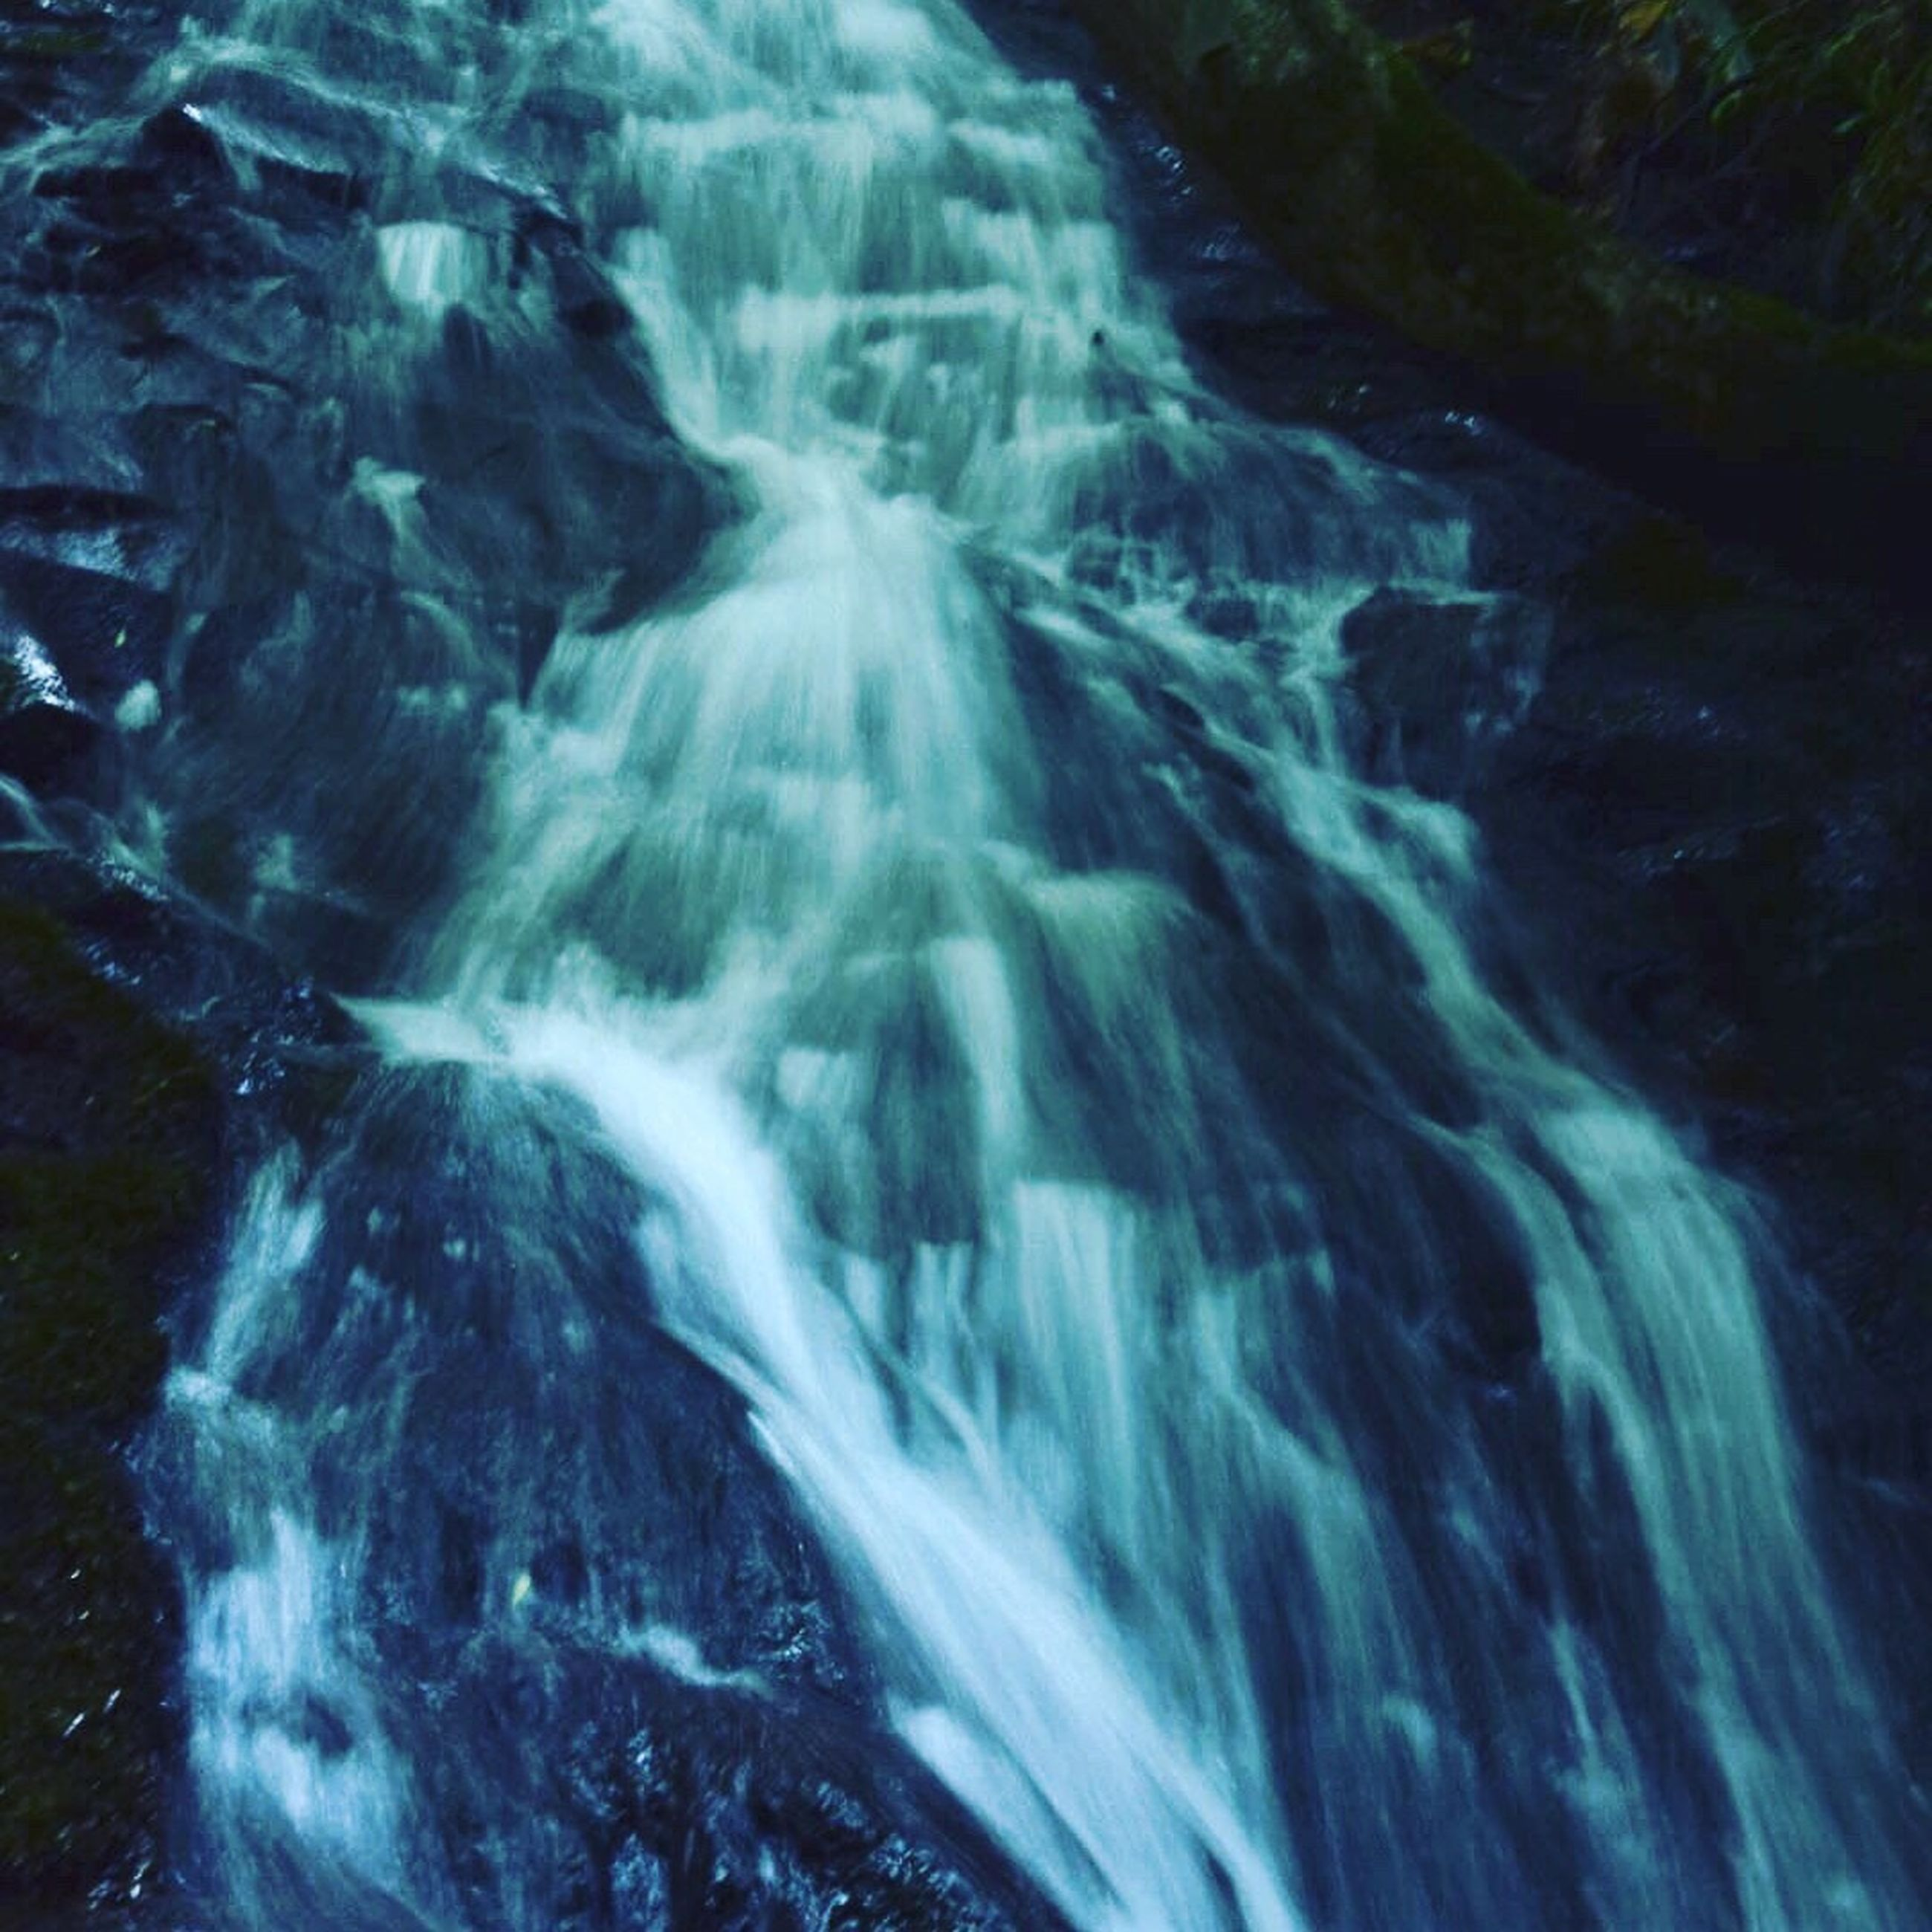 waterfall, rock - object, no people, water, nature, beauty in nature, scenics, outdoors, day